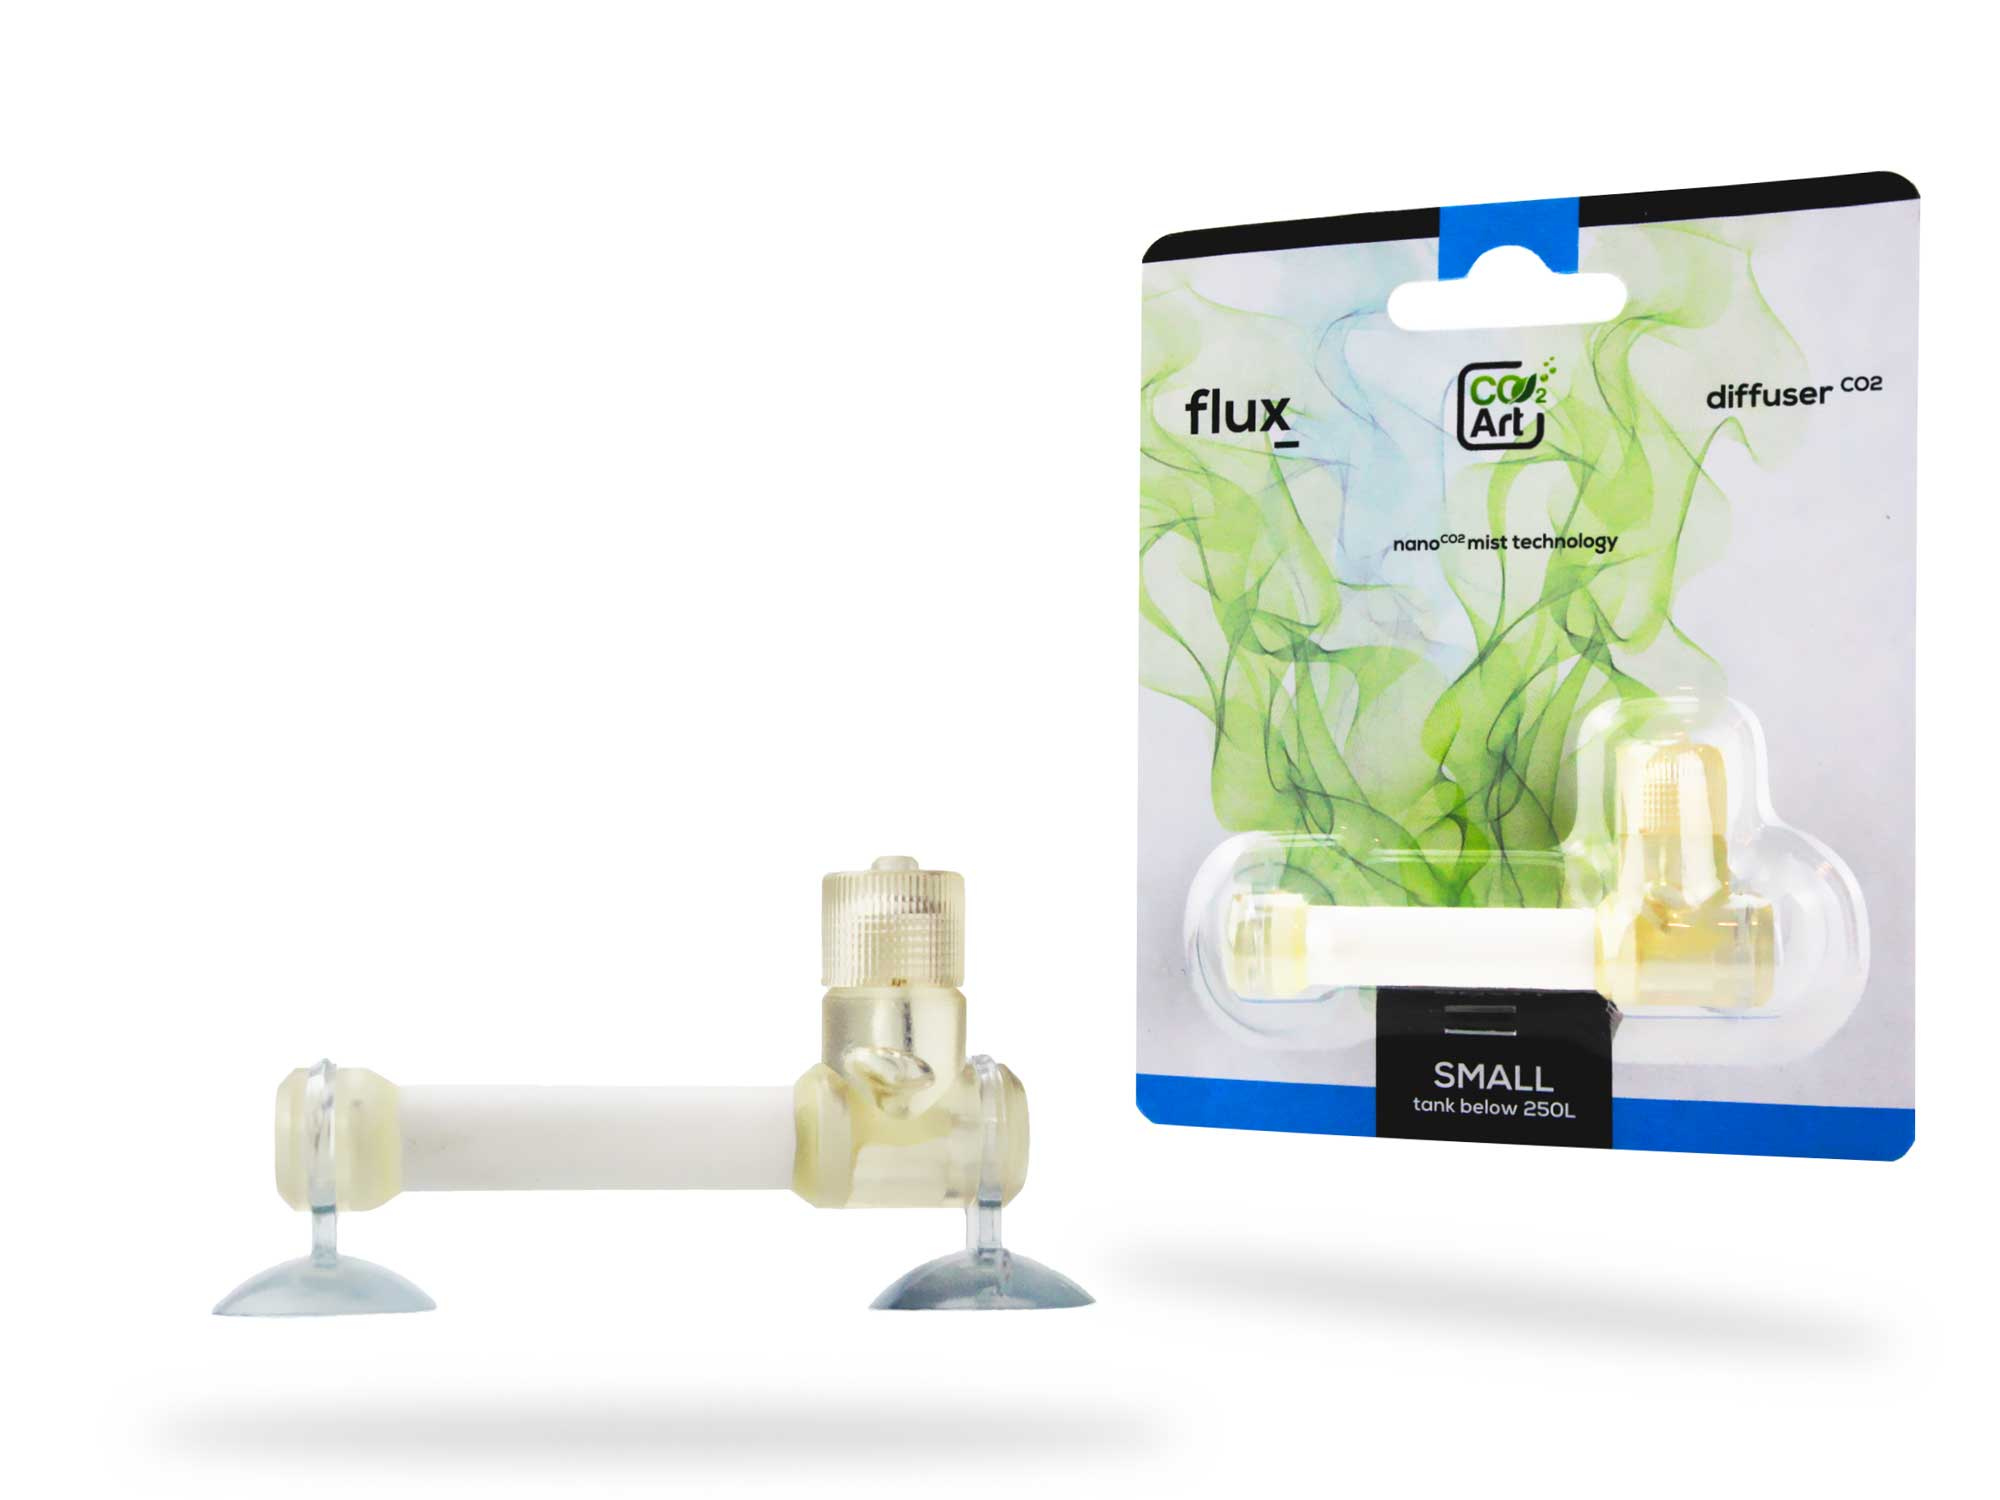 NEW In-Tank Bazooka Flux_ CO2 Diffuser for Planted Aquariums (Small) For Tanks Less Than 250 Litres